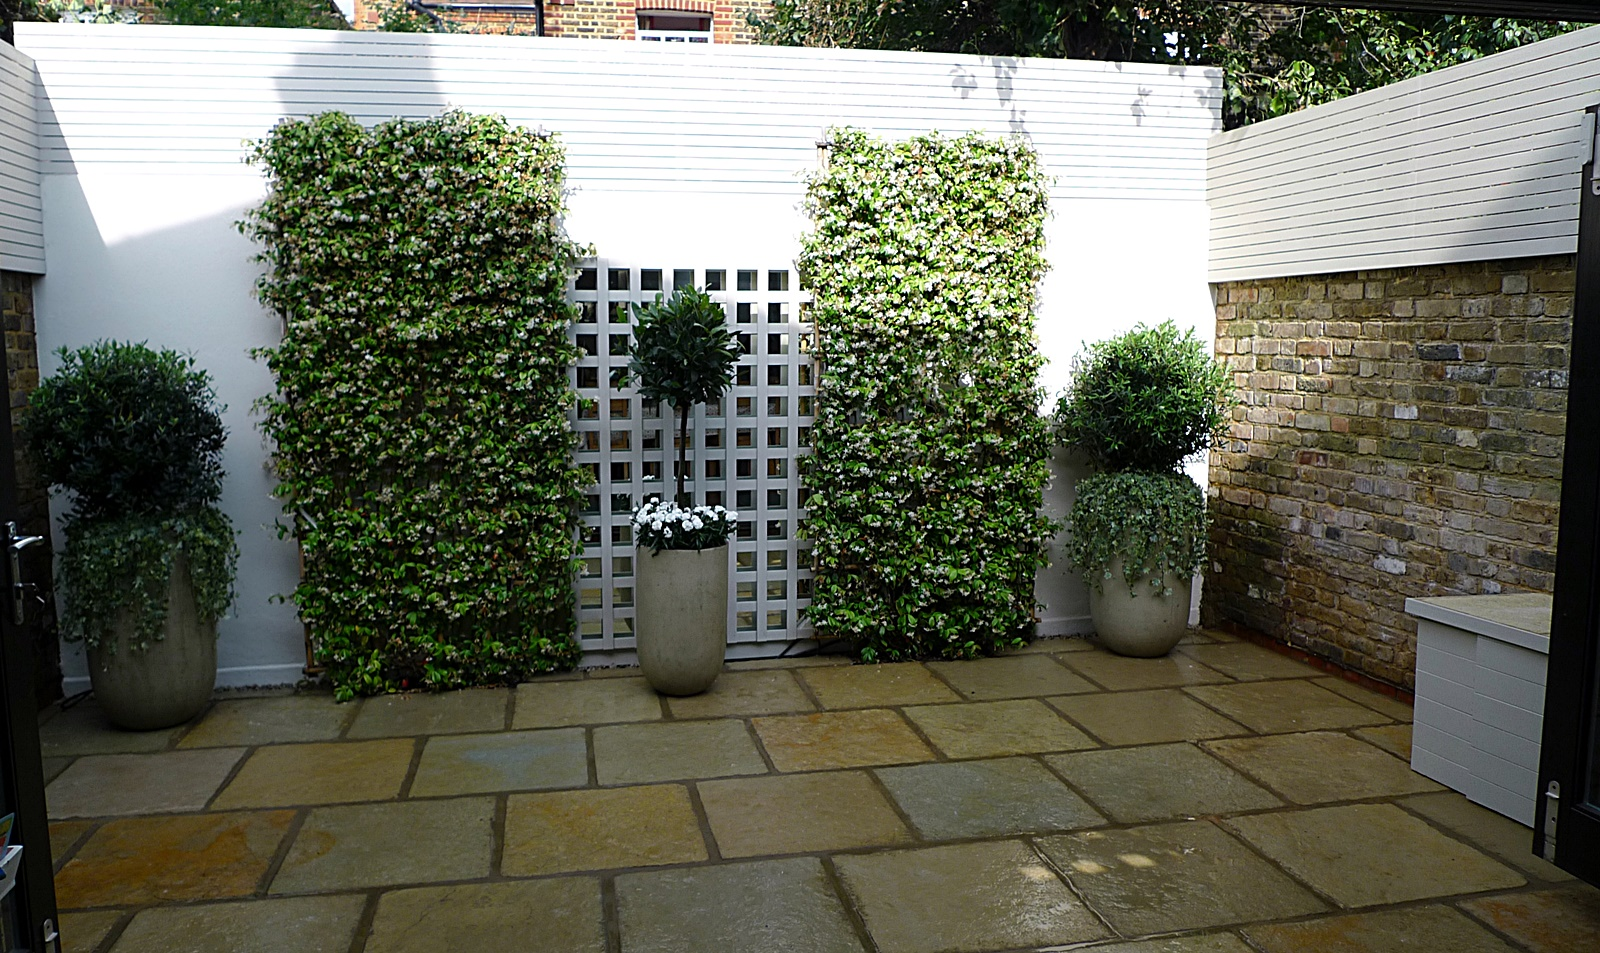 Garden Design Minimalist : Courtyard minimalist contemporary garden design and designer pimlico ...